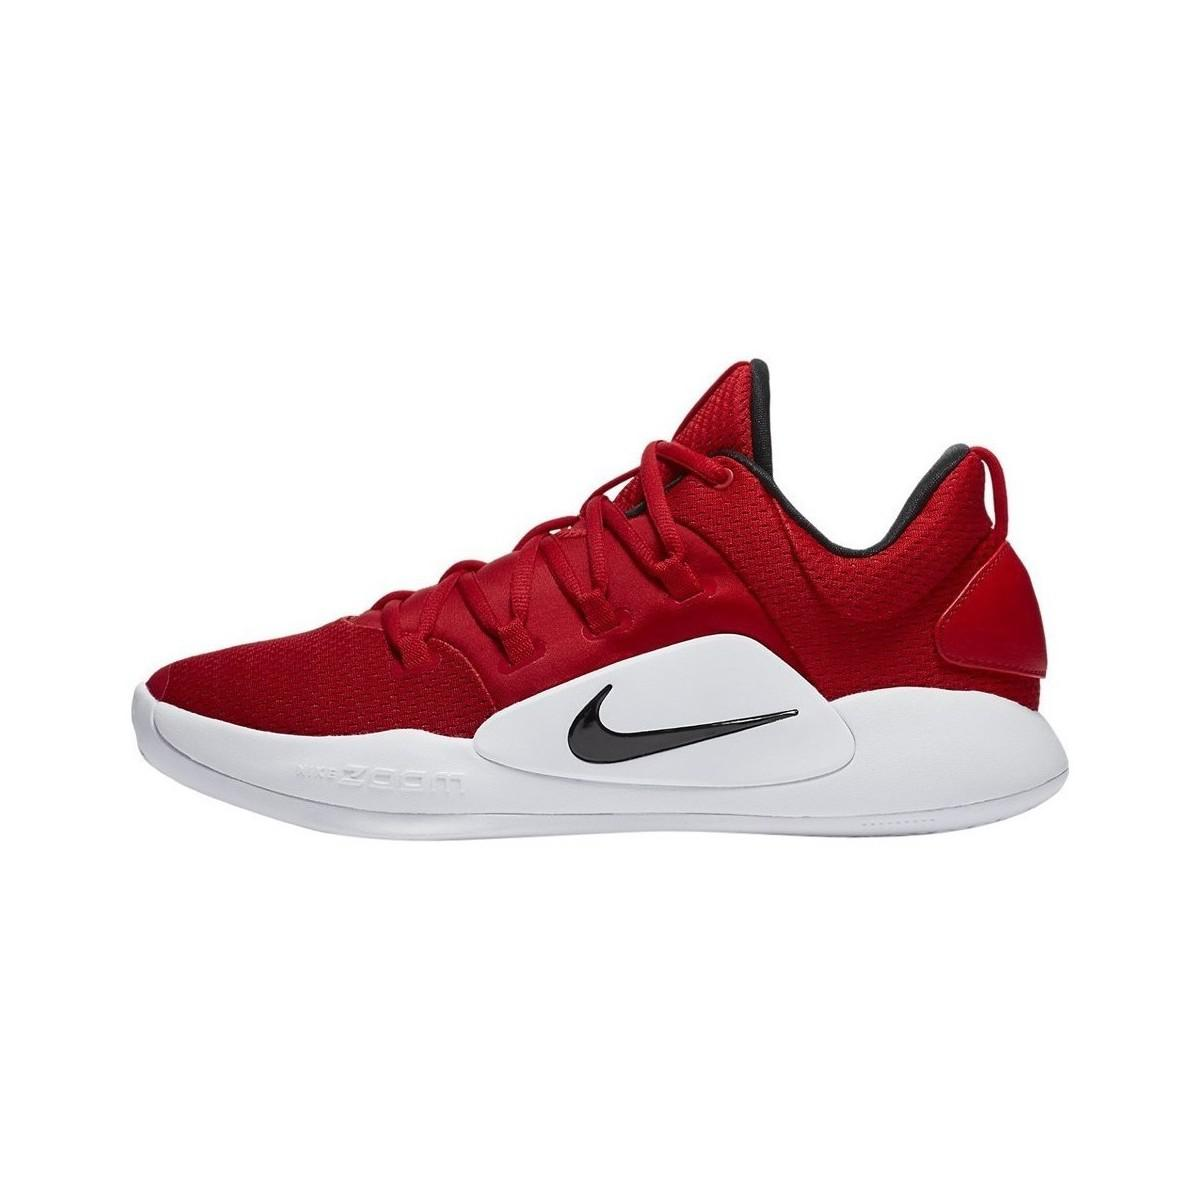 6407166af8d8 Nike Hyperdunk X Low Tb Men s Basketball Trainers (shoes) In White ...